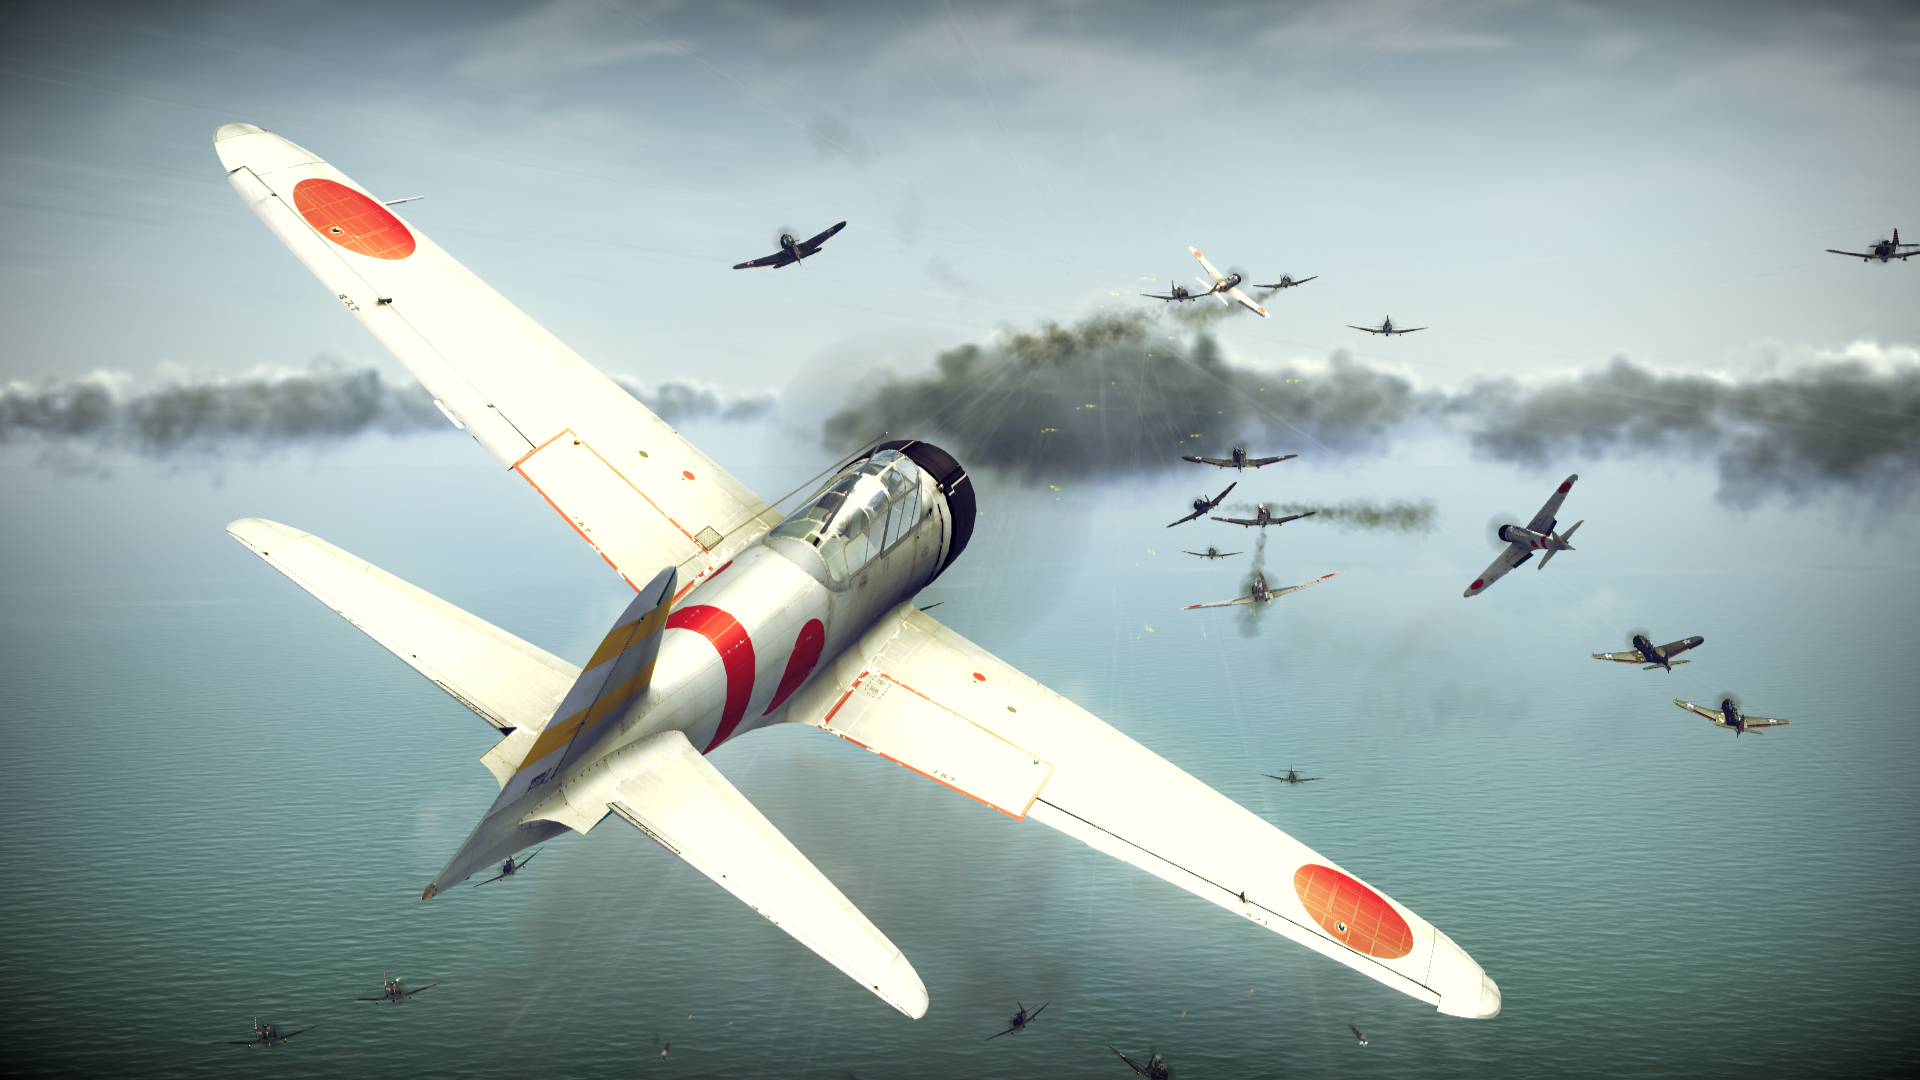 ww2 dogfights Distribuie această aplicație via ww2 dogfight air battle pilot direct download get ready for an obliterating aerial dogfight battle, as you gear up to pilot the most exquisite ww2.